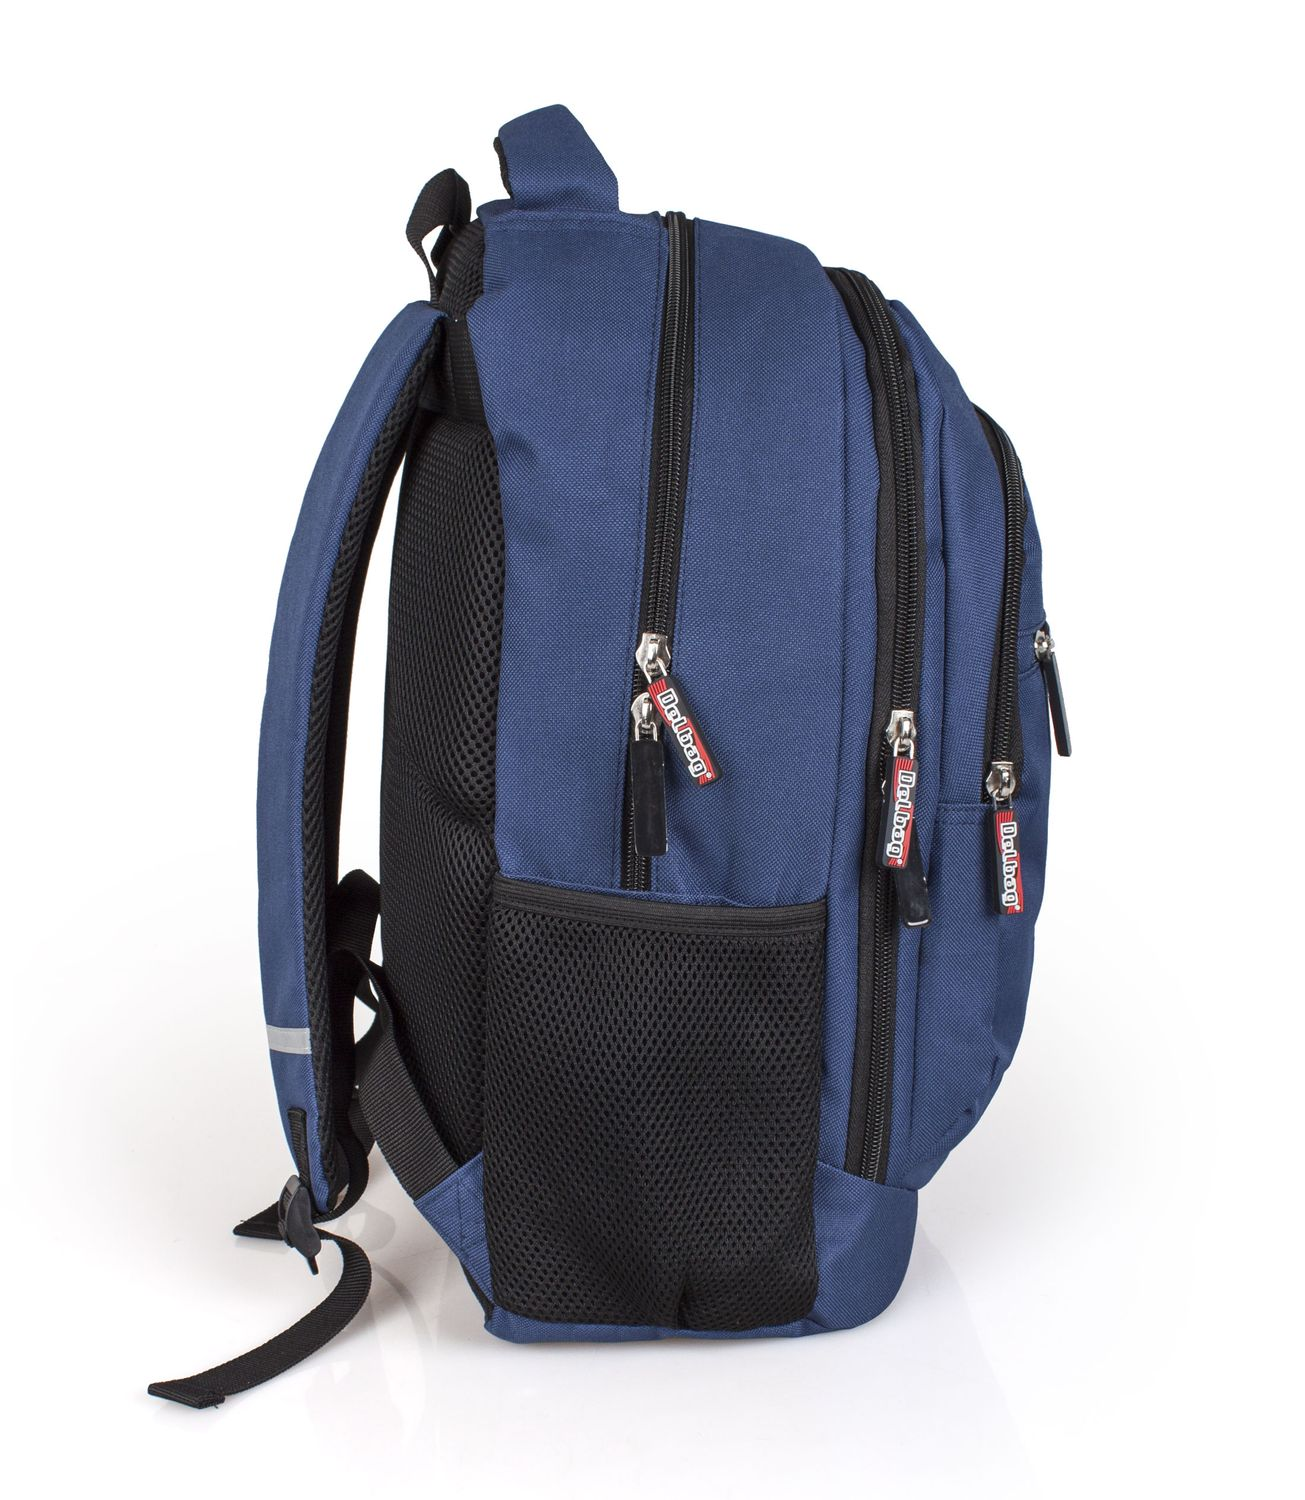 Delbag Triple Compartment Laptop Backpack Multicolour – image 3